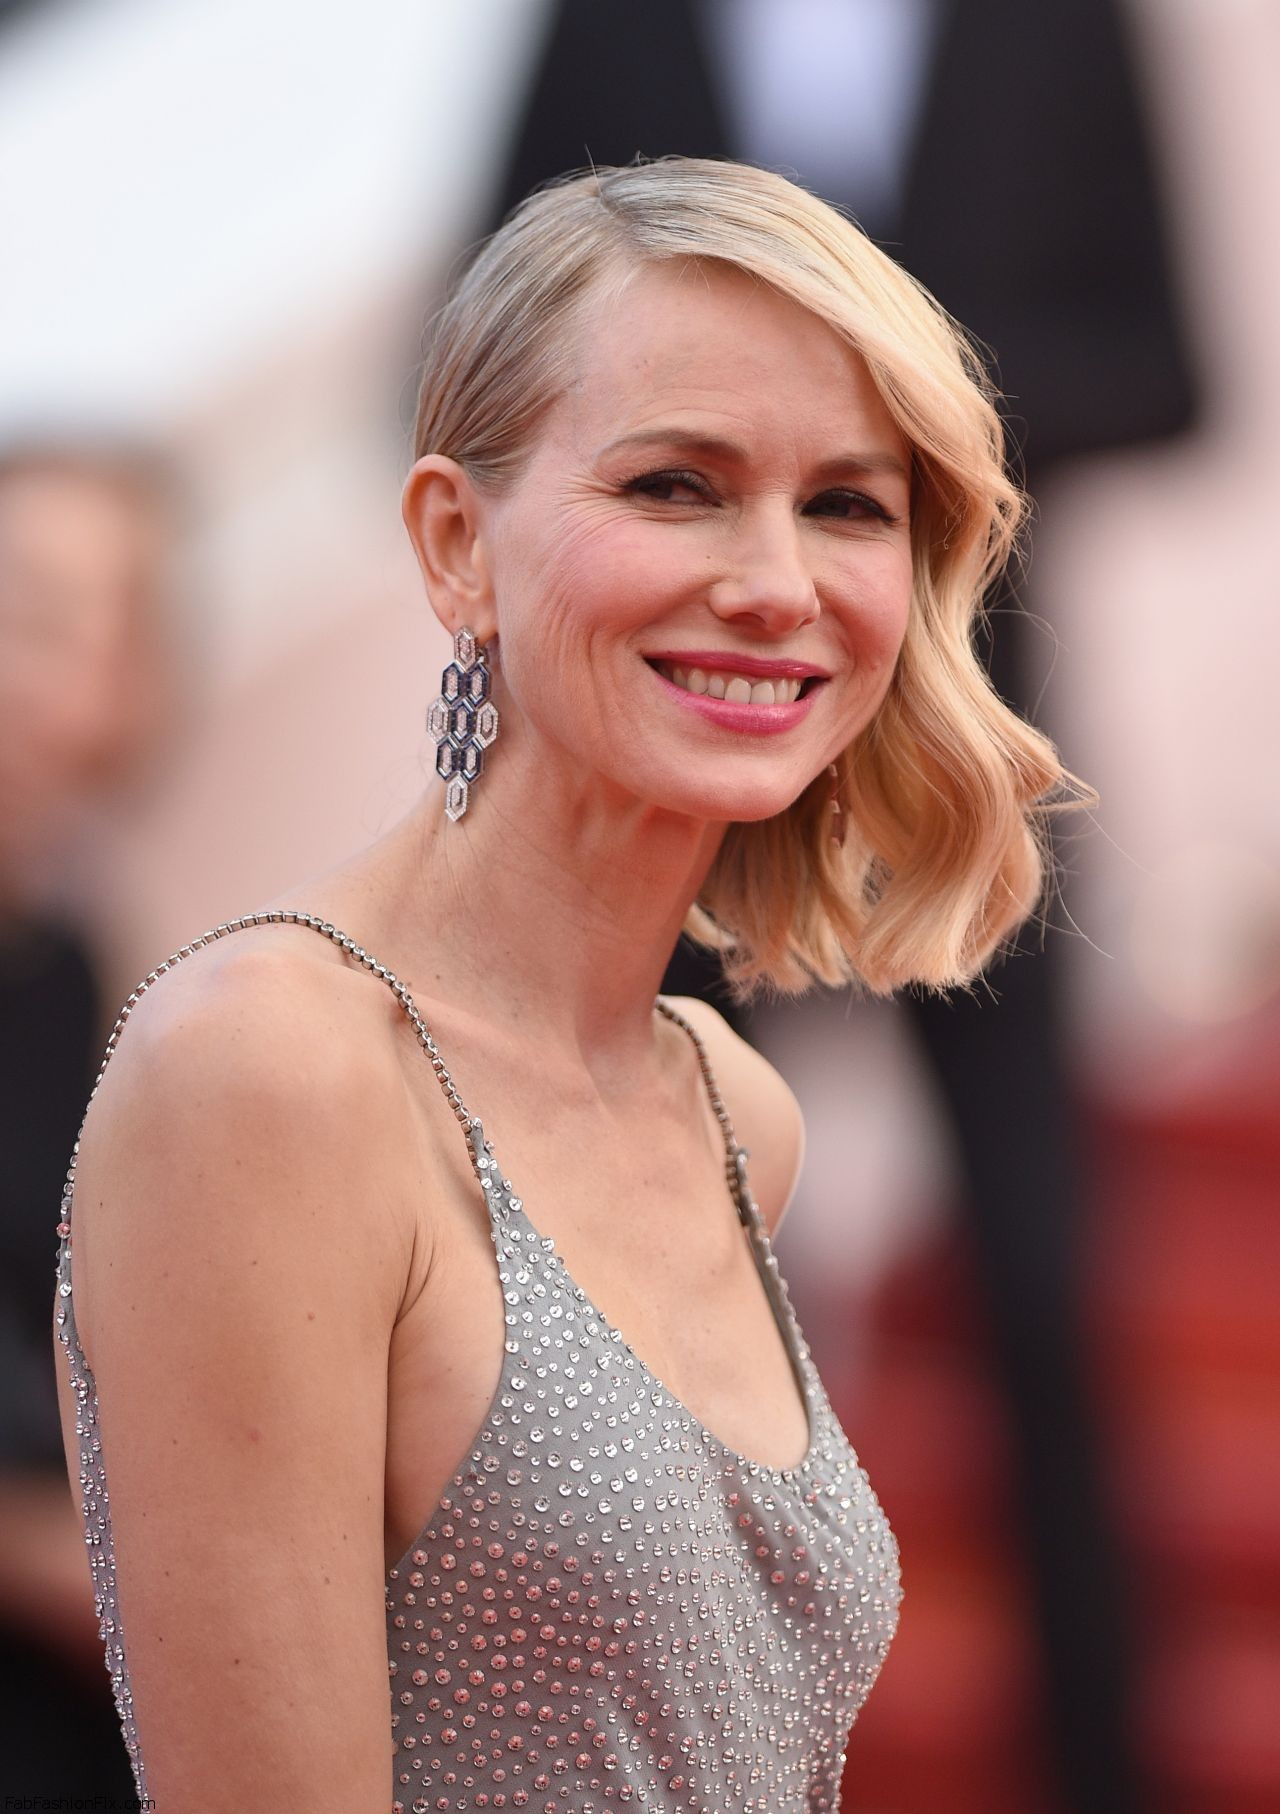 naomi-watts-money-monster-premiere-2016-cannes-film-festival-1